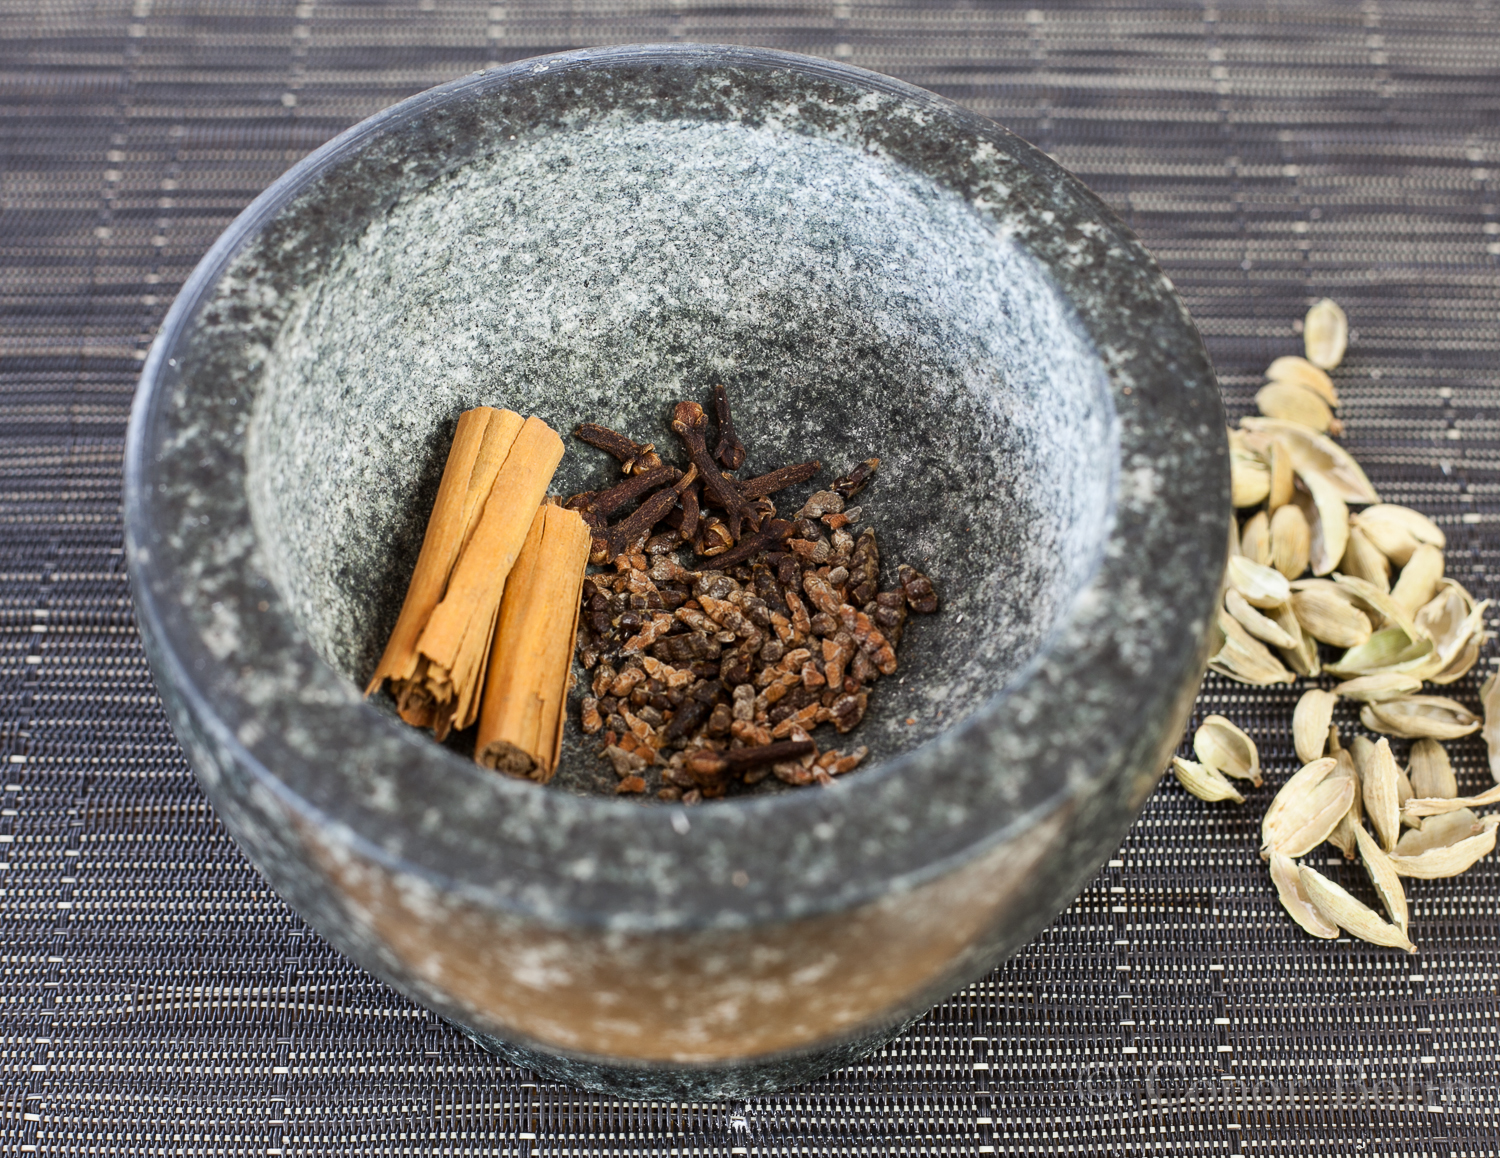 Spices in a mortar